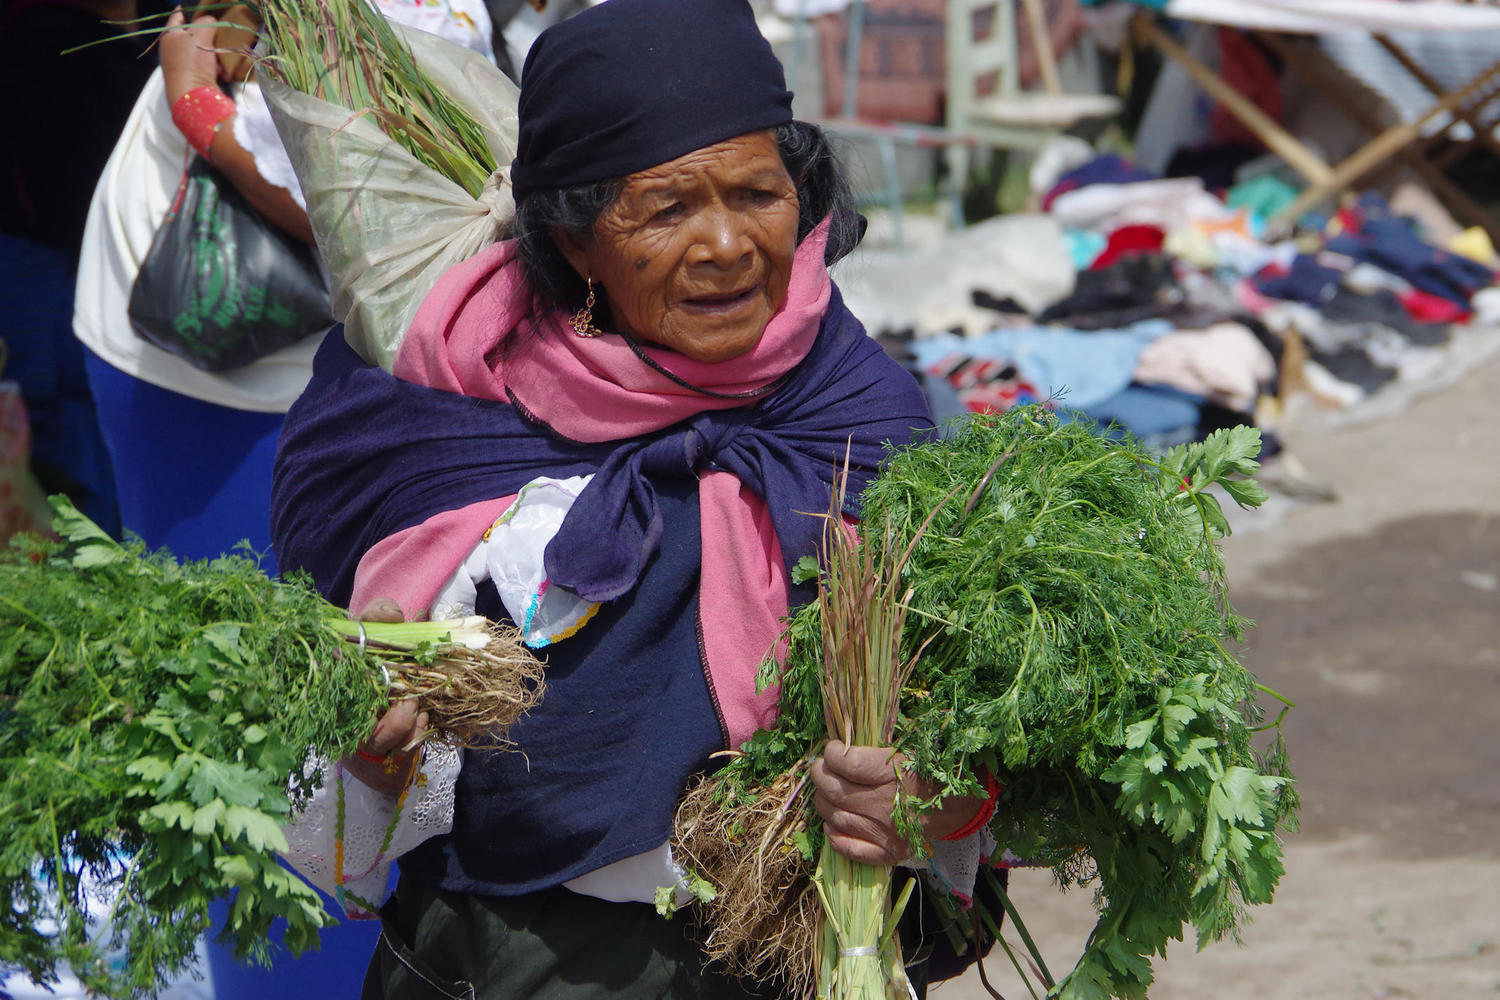 Local selling vegetables at Otavalo